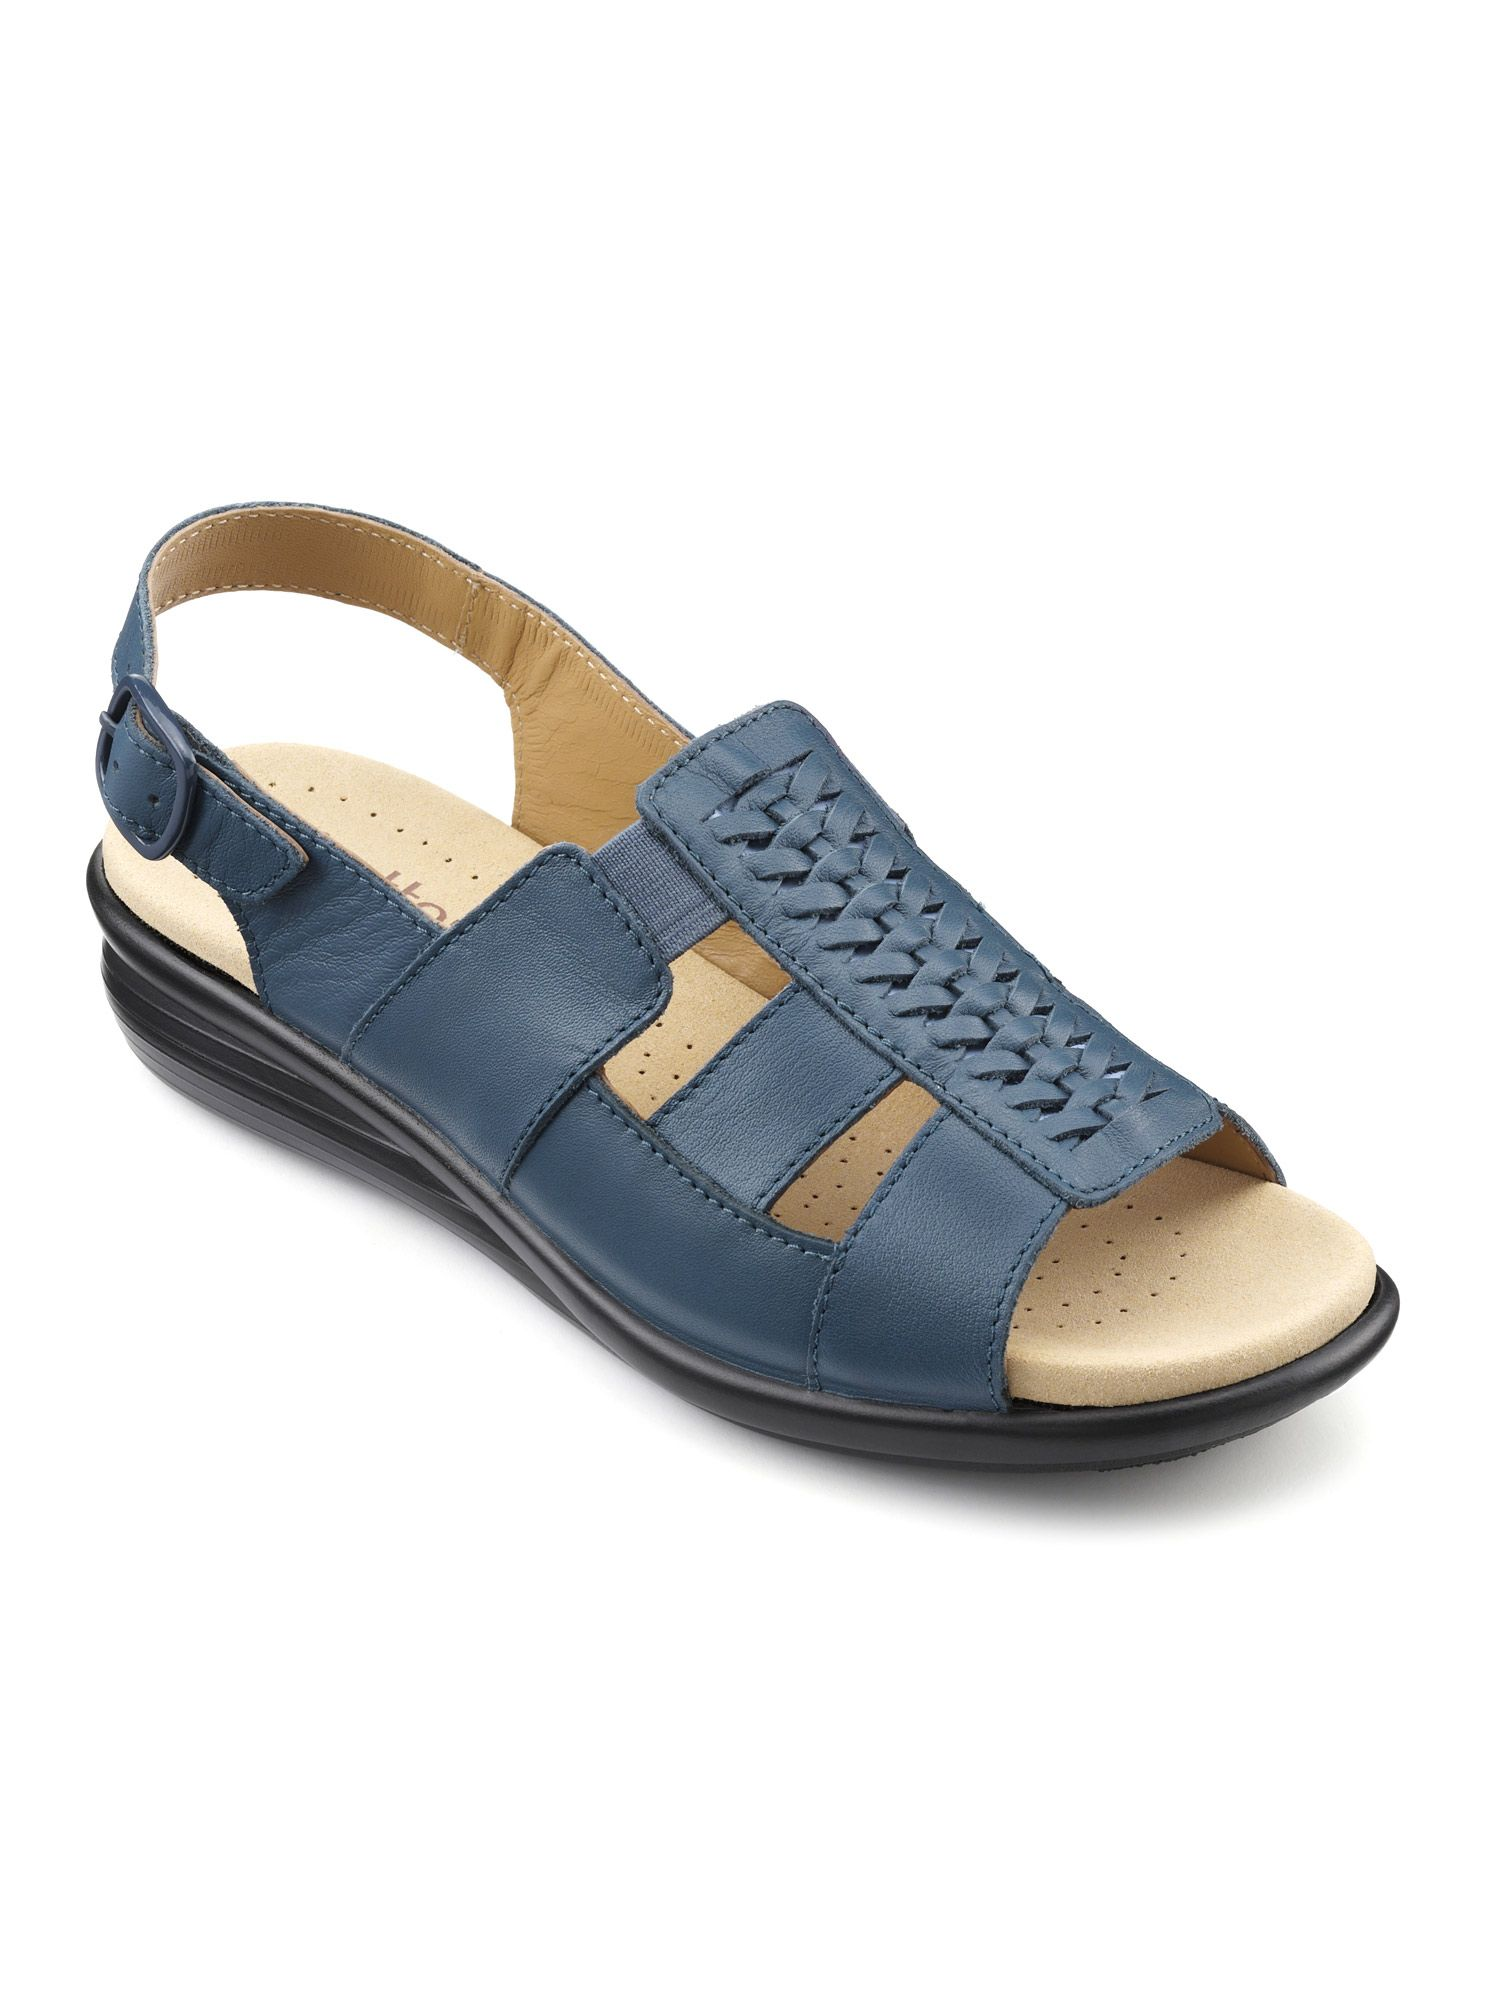 Hotter Candice Ladies Sandal, Blue